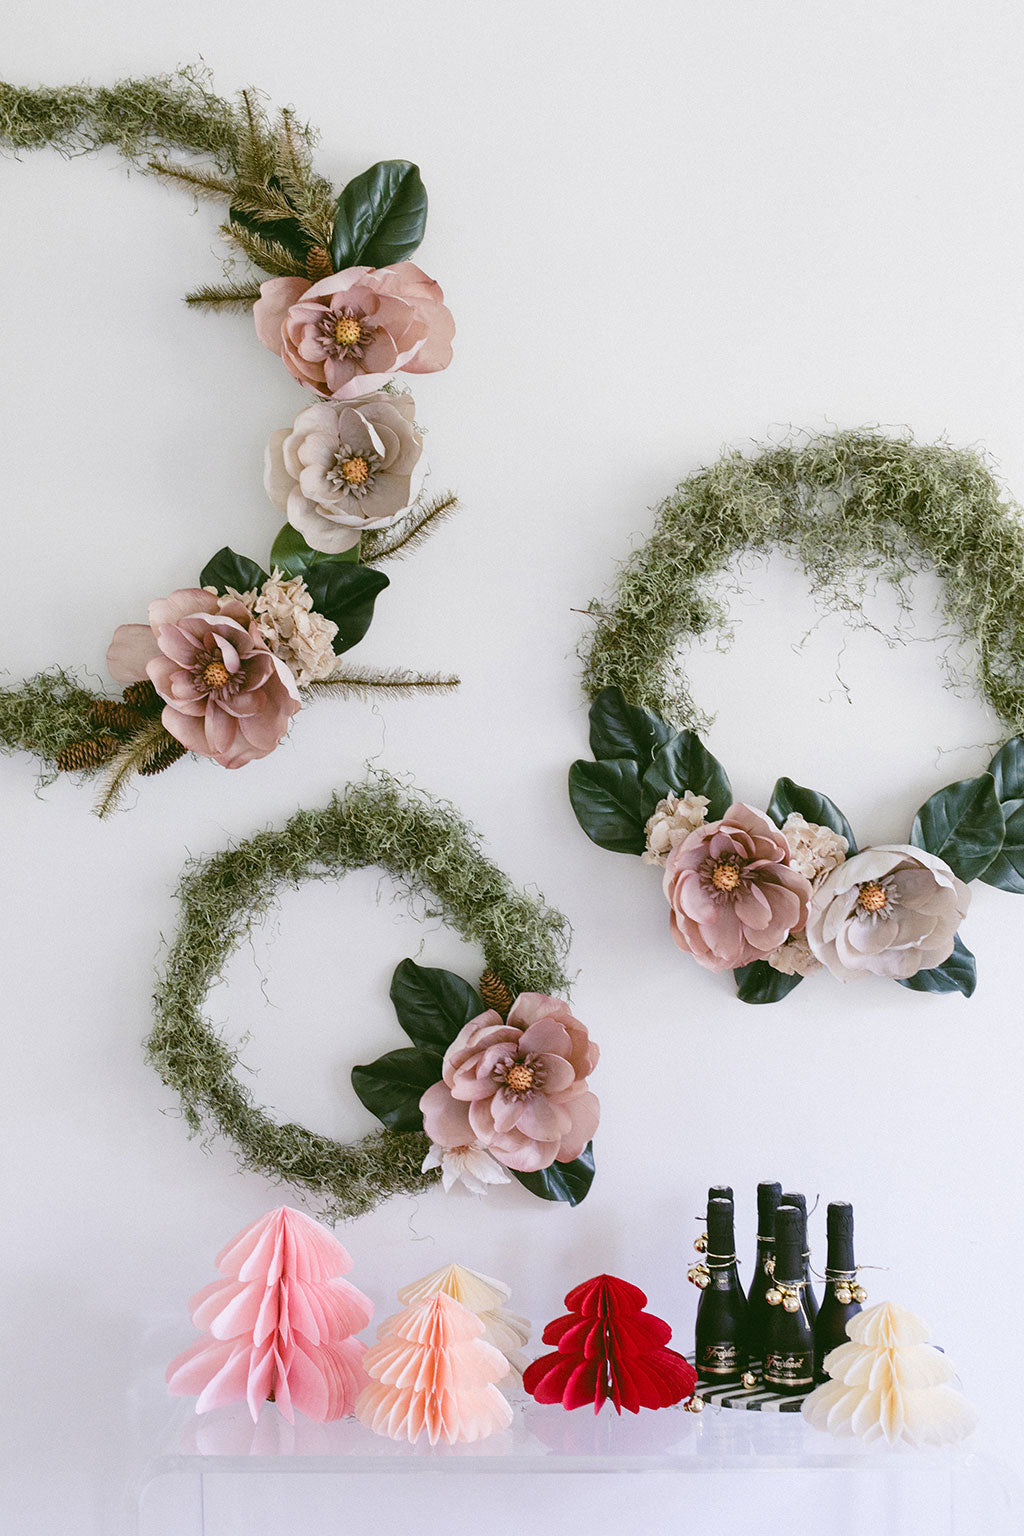 DIY Christmas Wreath with Holiday Flowers